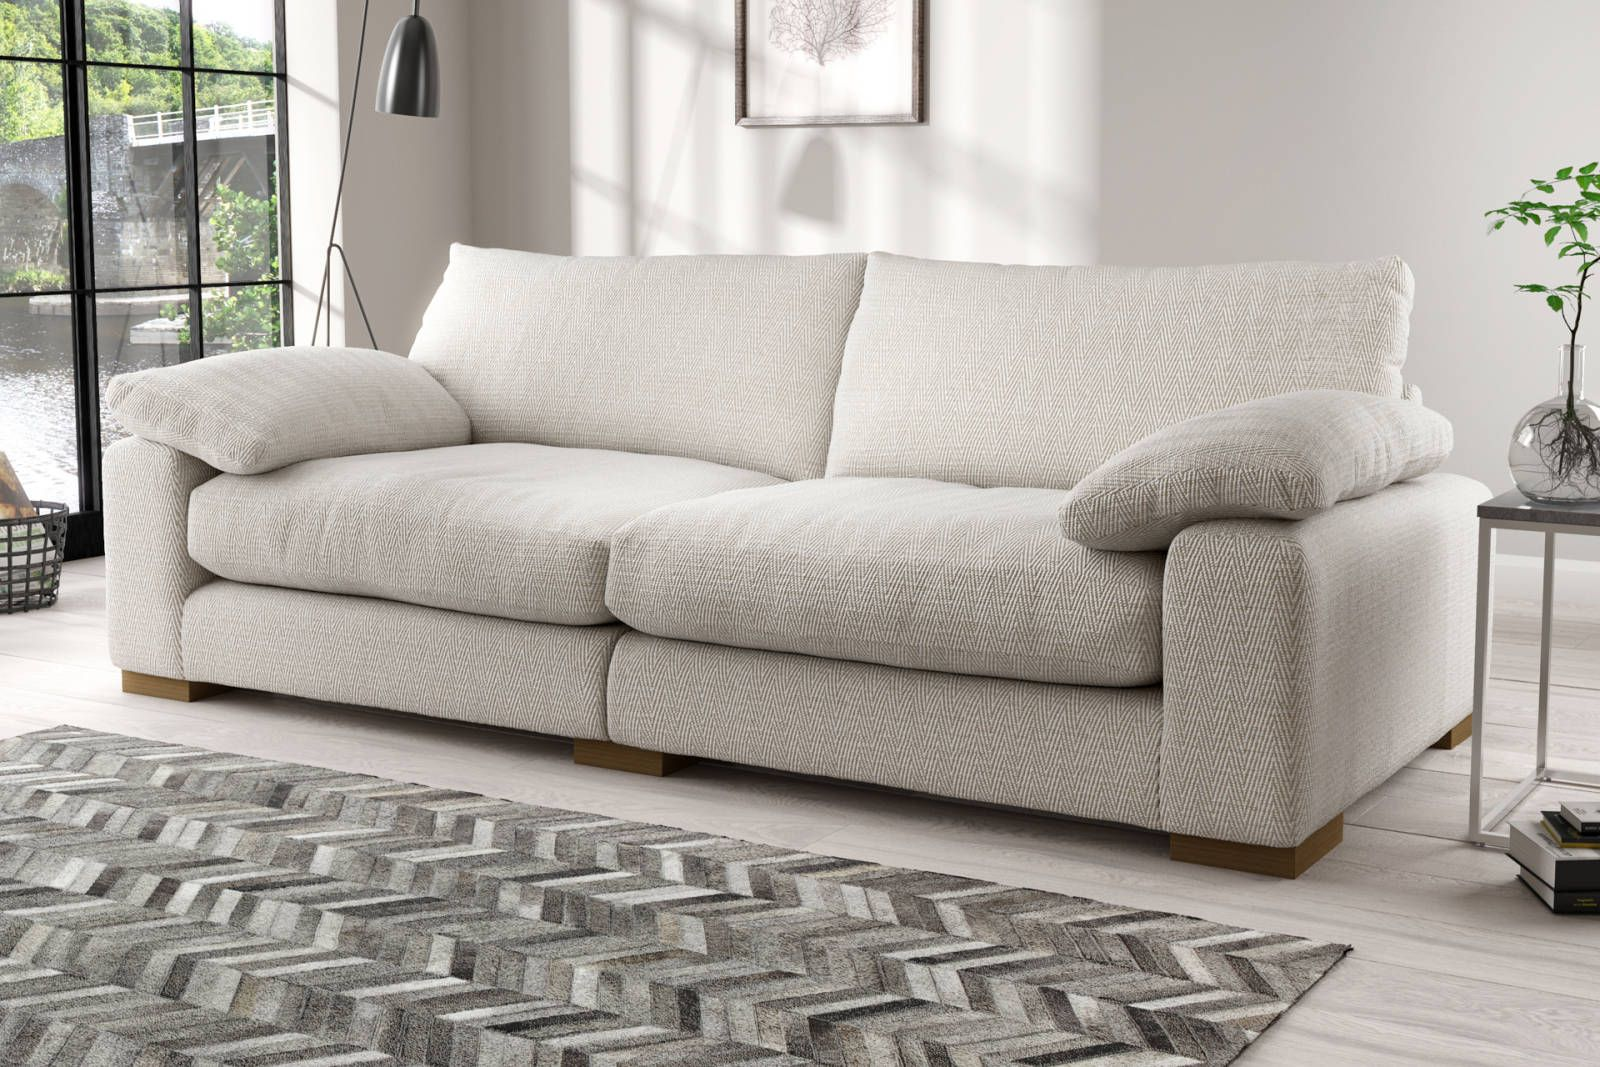 paloma sofa sofology purple living room with brown coco 800 ish paint colors pinterest fabric